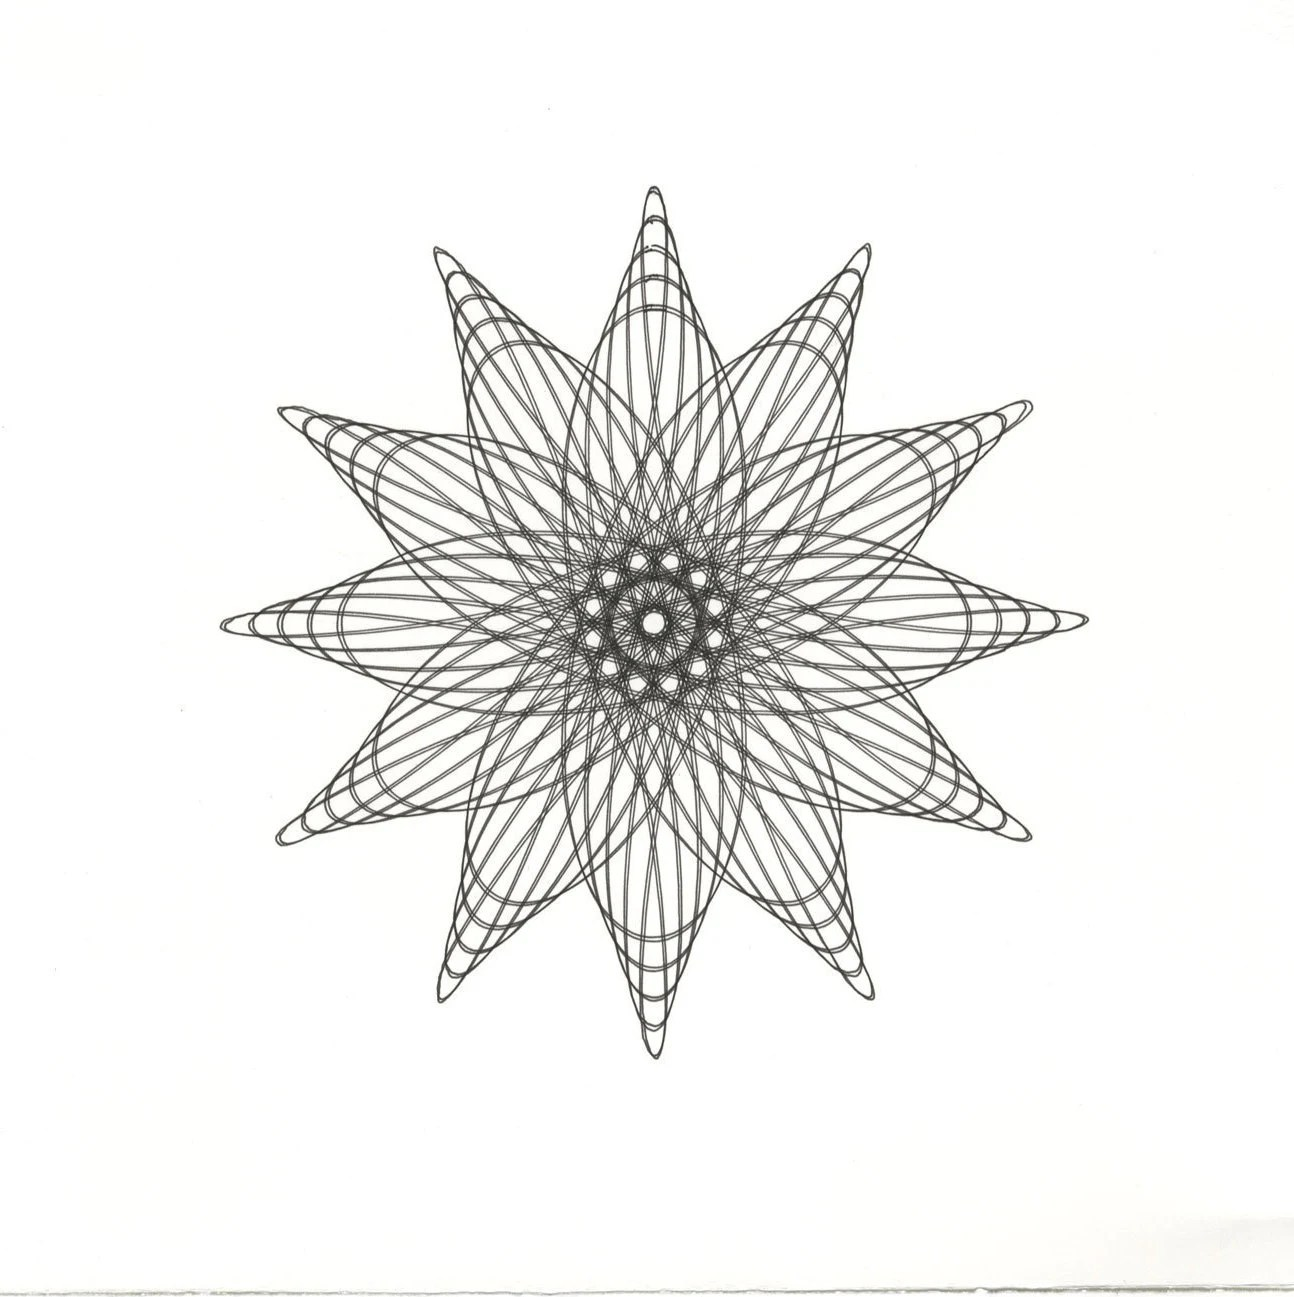 Items similar to Flower Line Drawing, Original ink Drawing